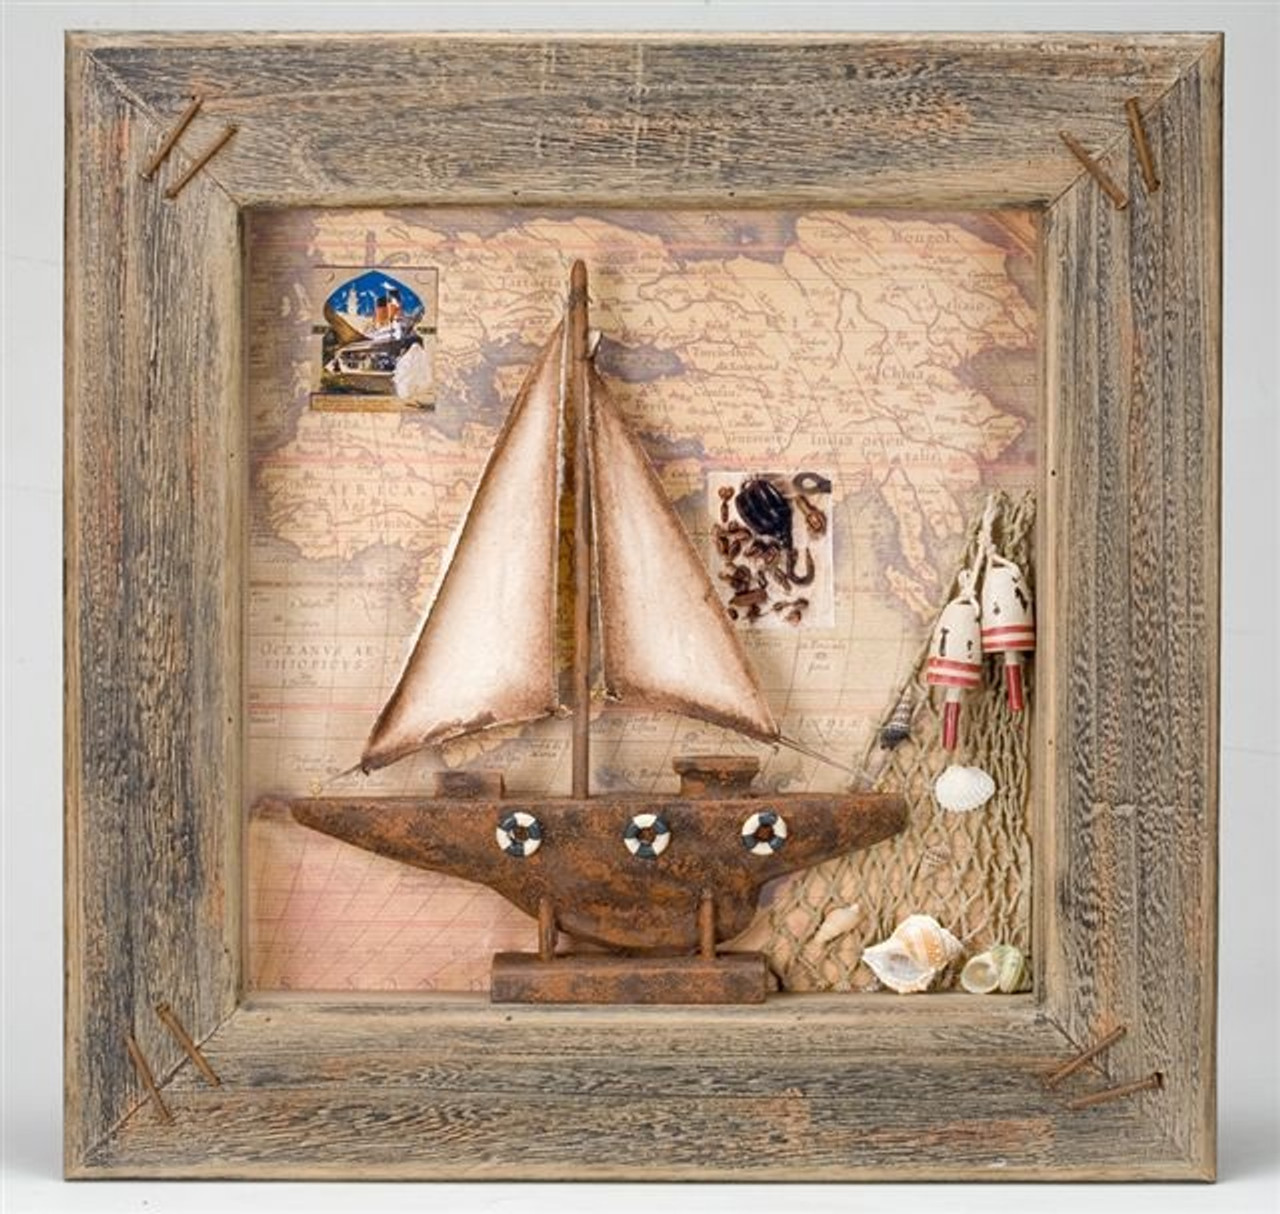 Sailboat in Picture Frame